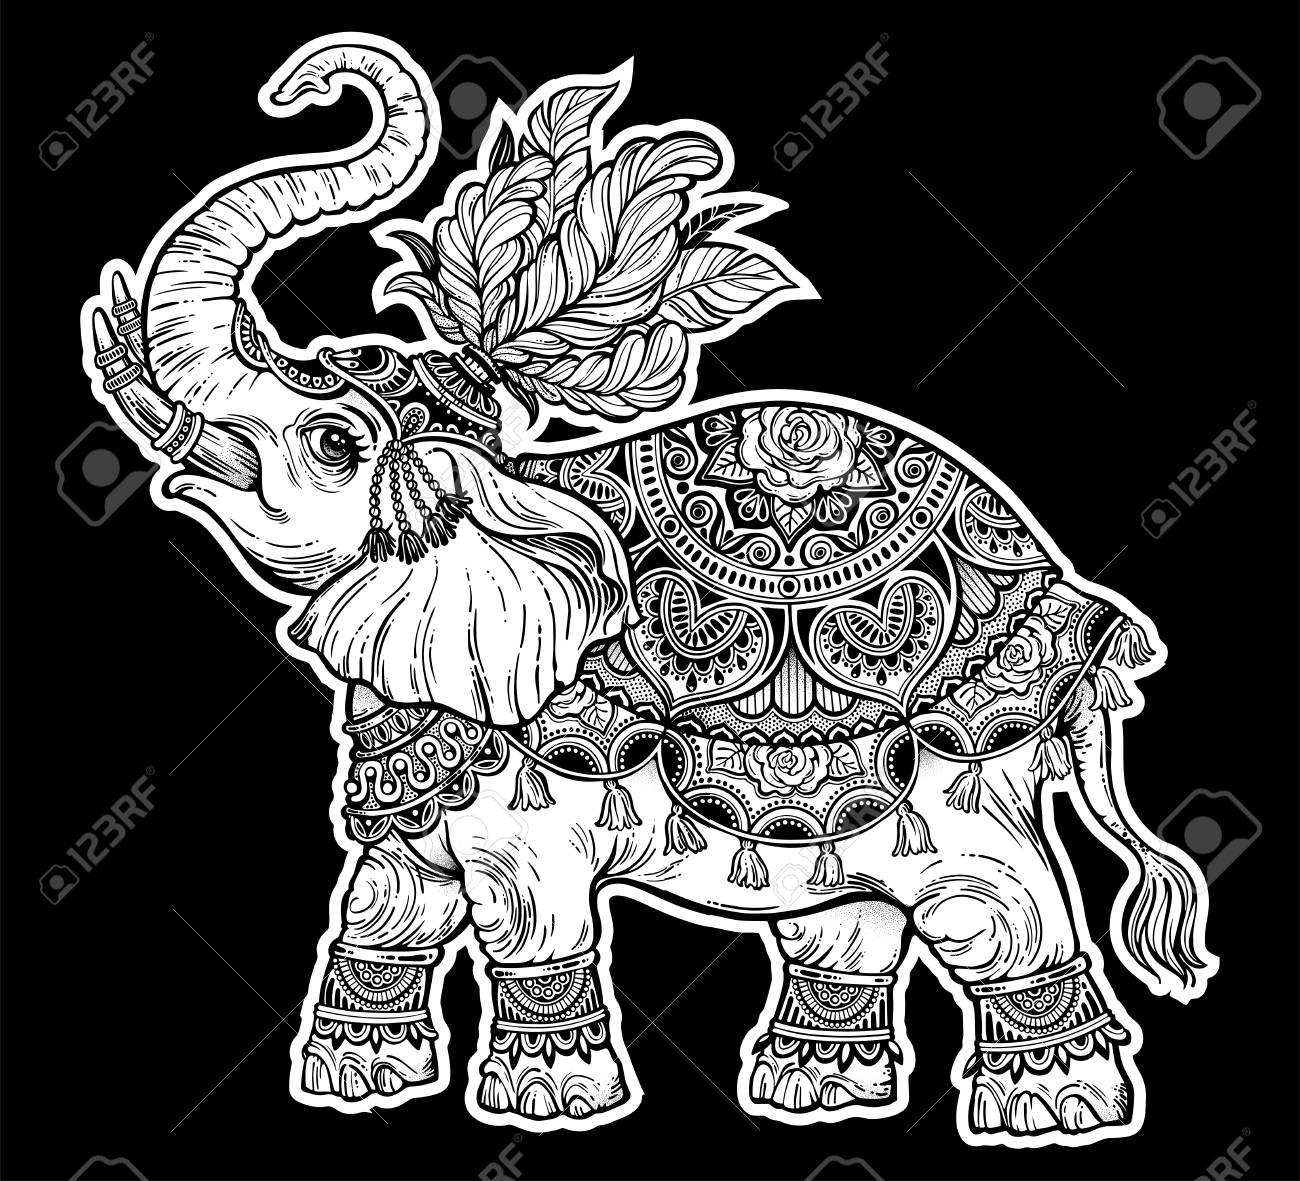 vintage indian ethnic boho elephant with feathers vector